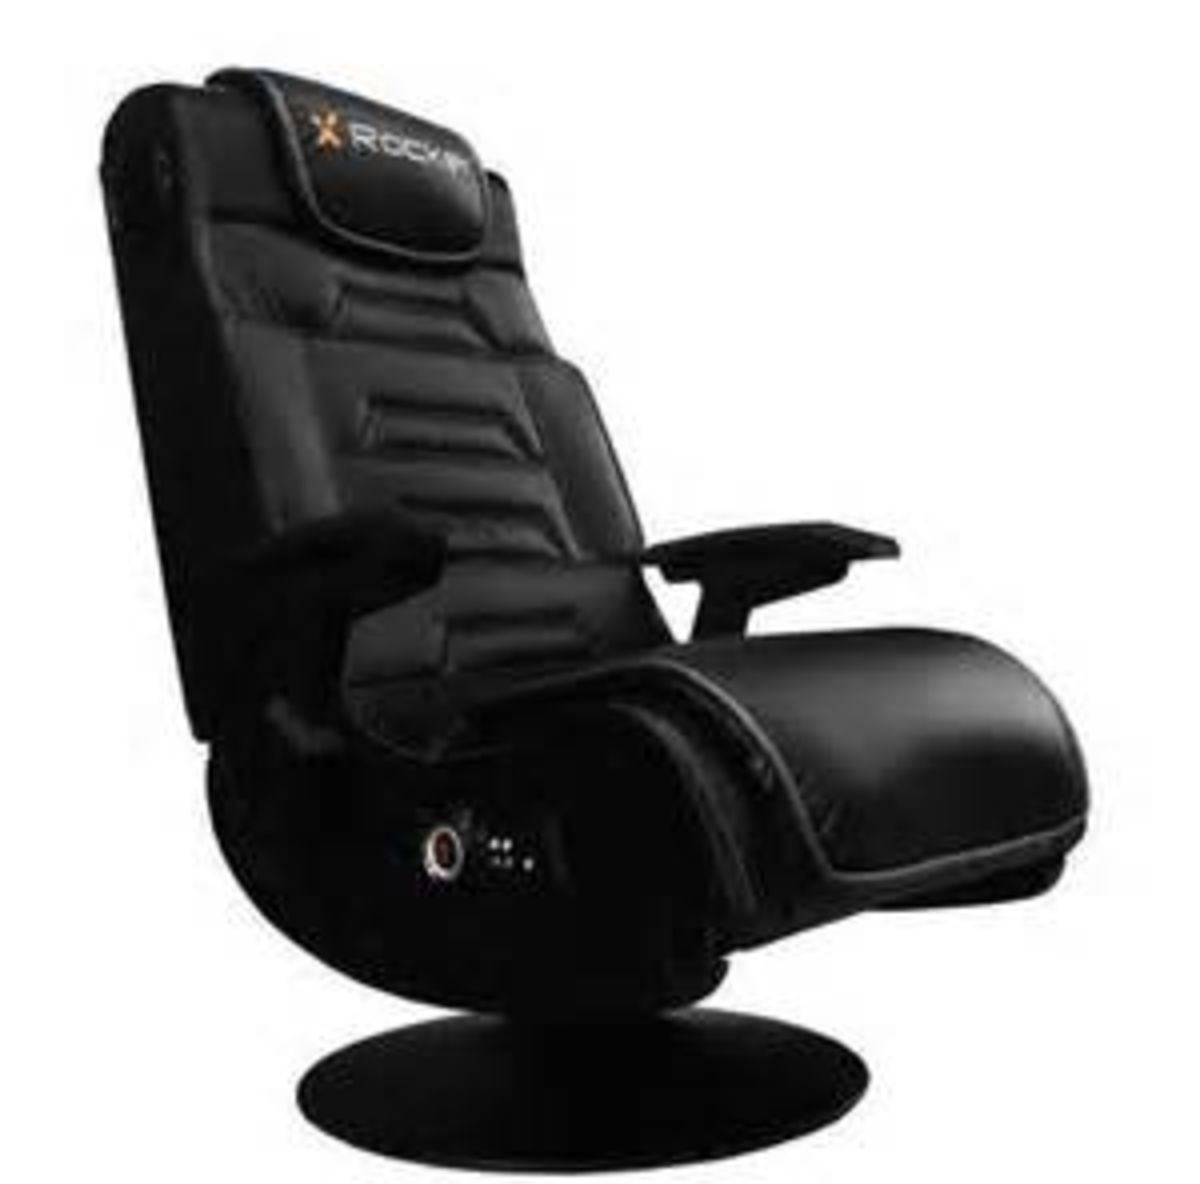 Headline for Gaming Chairs with Speakers